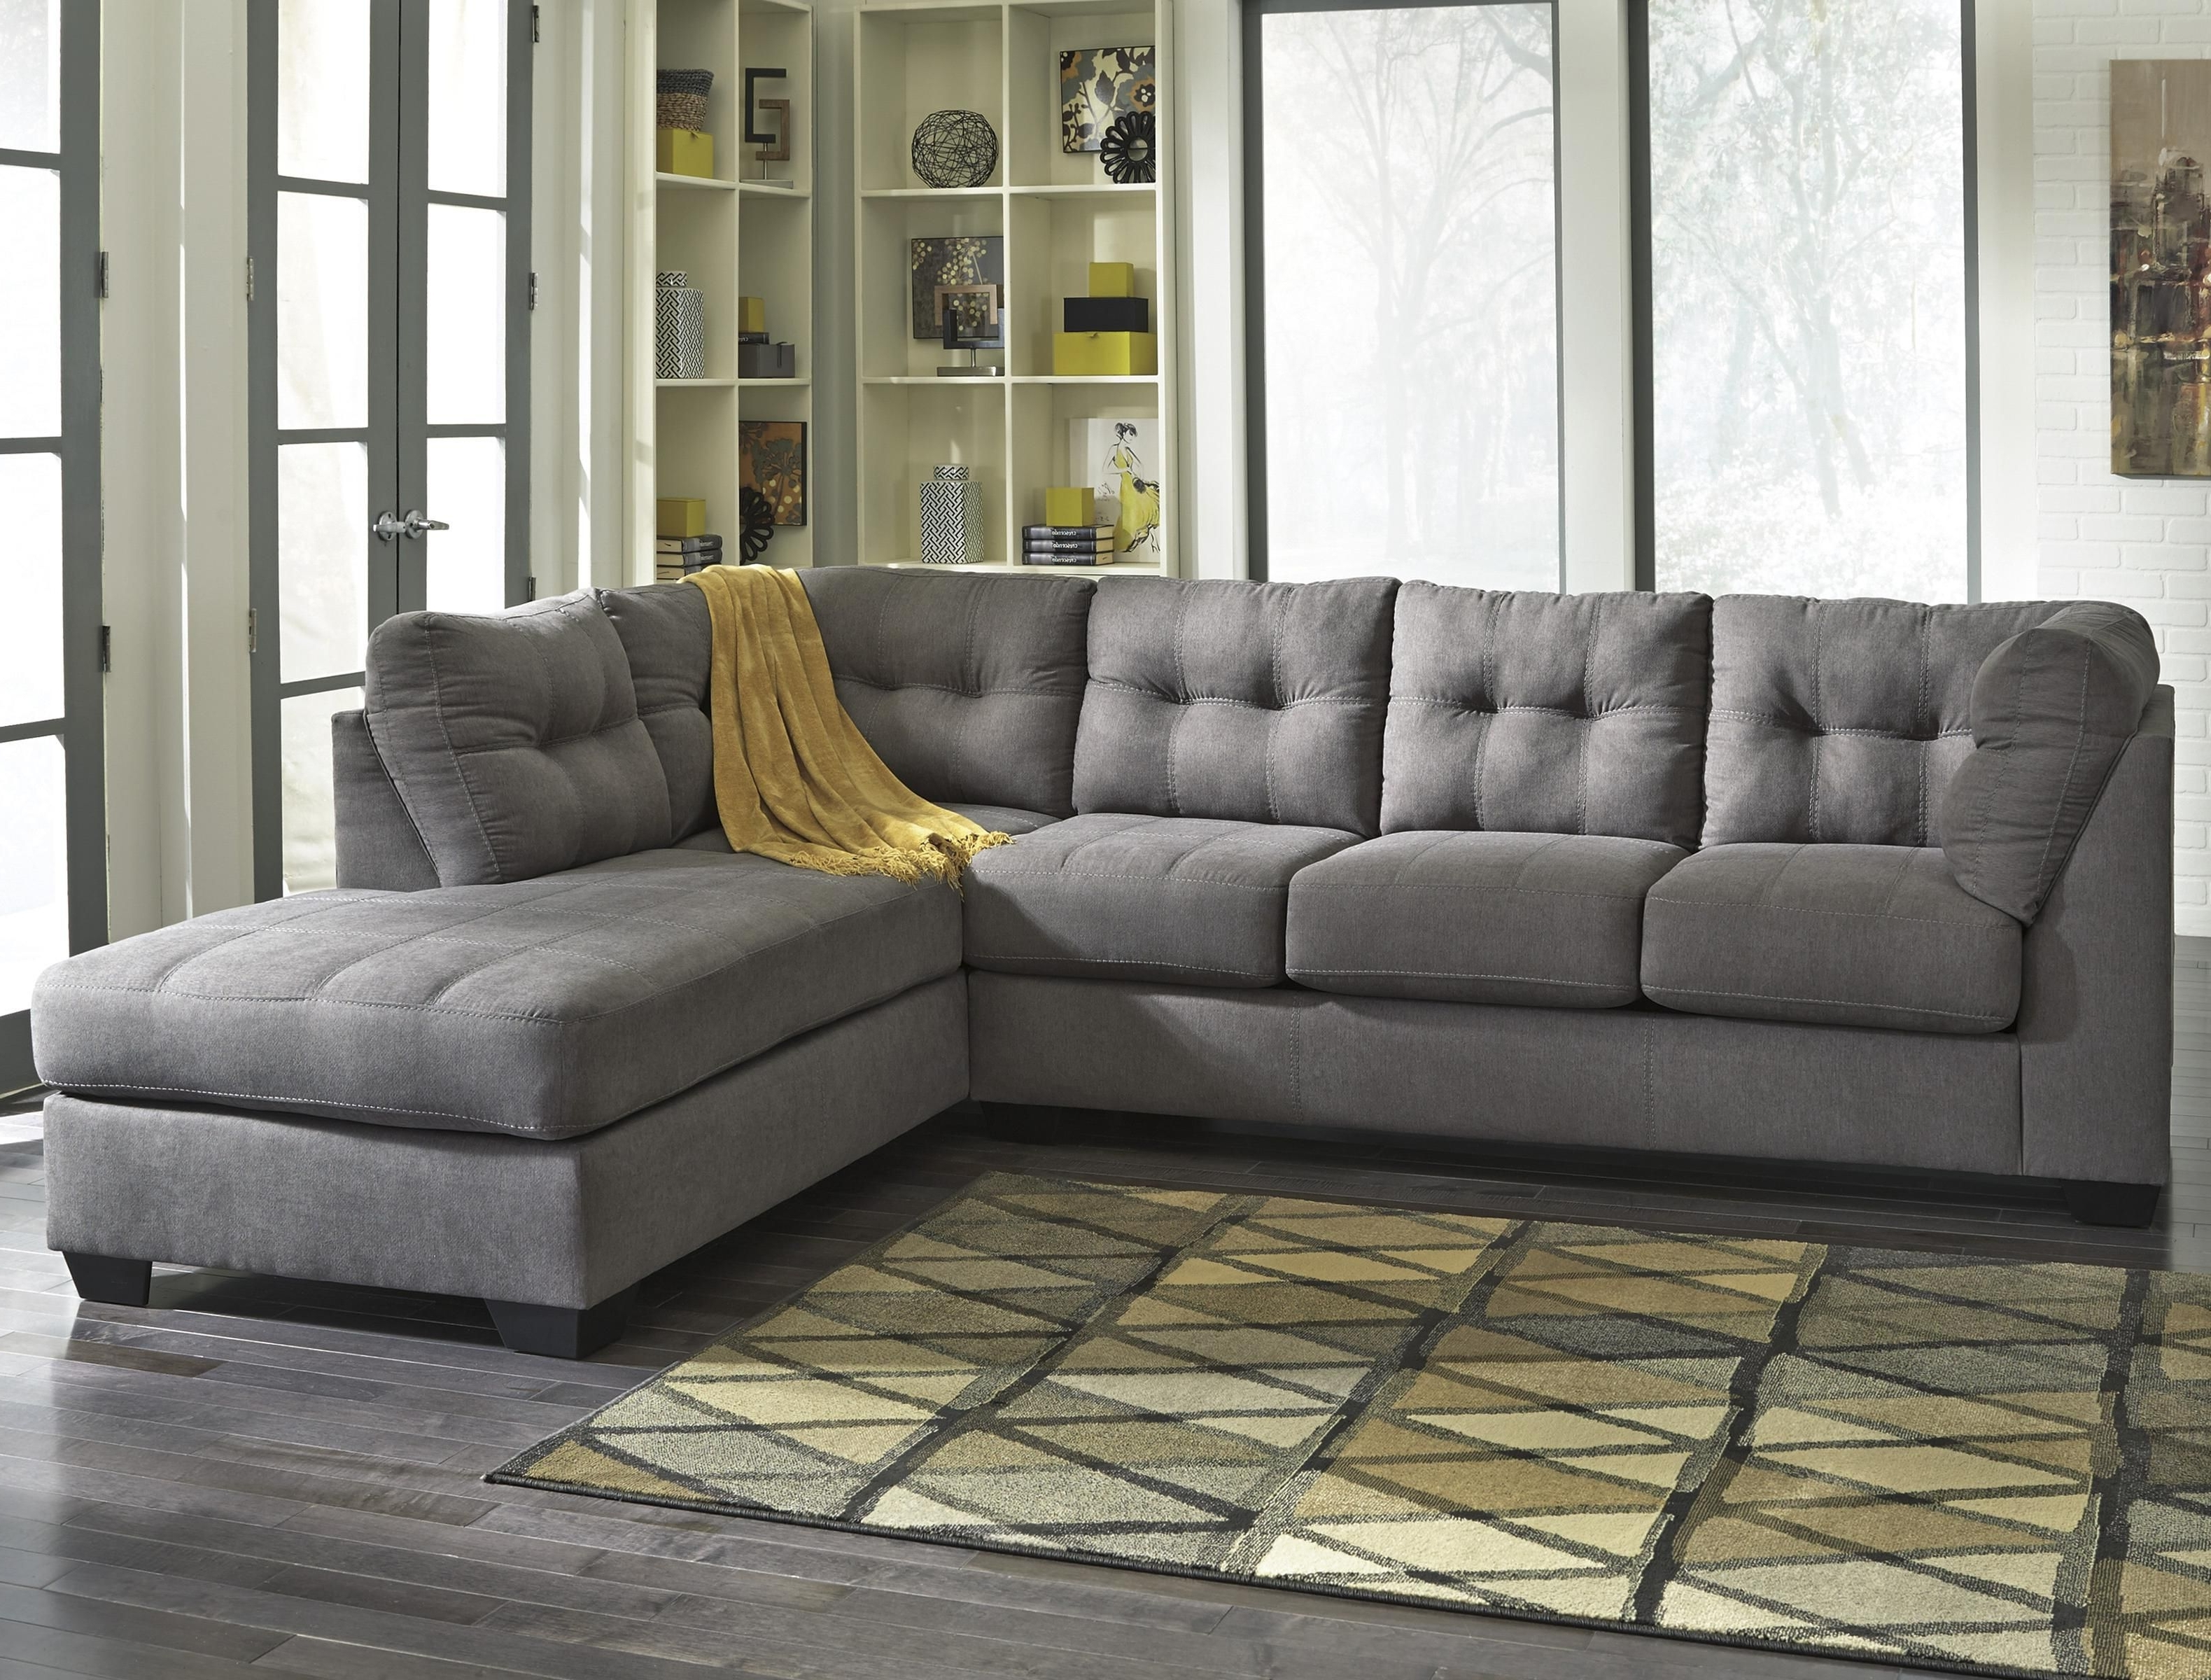 Widely Used Gray Leather Couch Decorating Ideas Fabric Reclining Sectional For Gray Sectionals With Chaise (View 13 of 15)